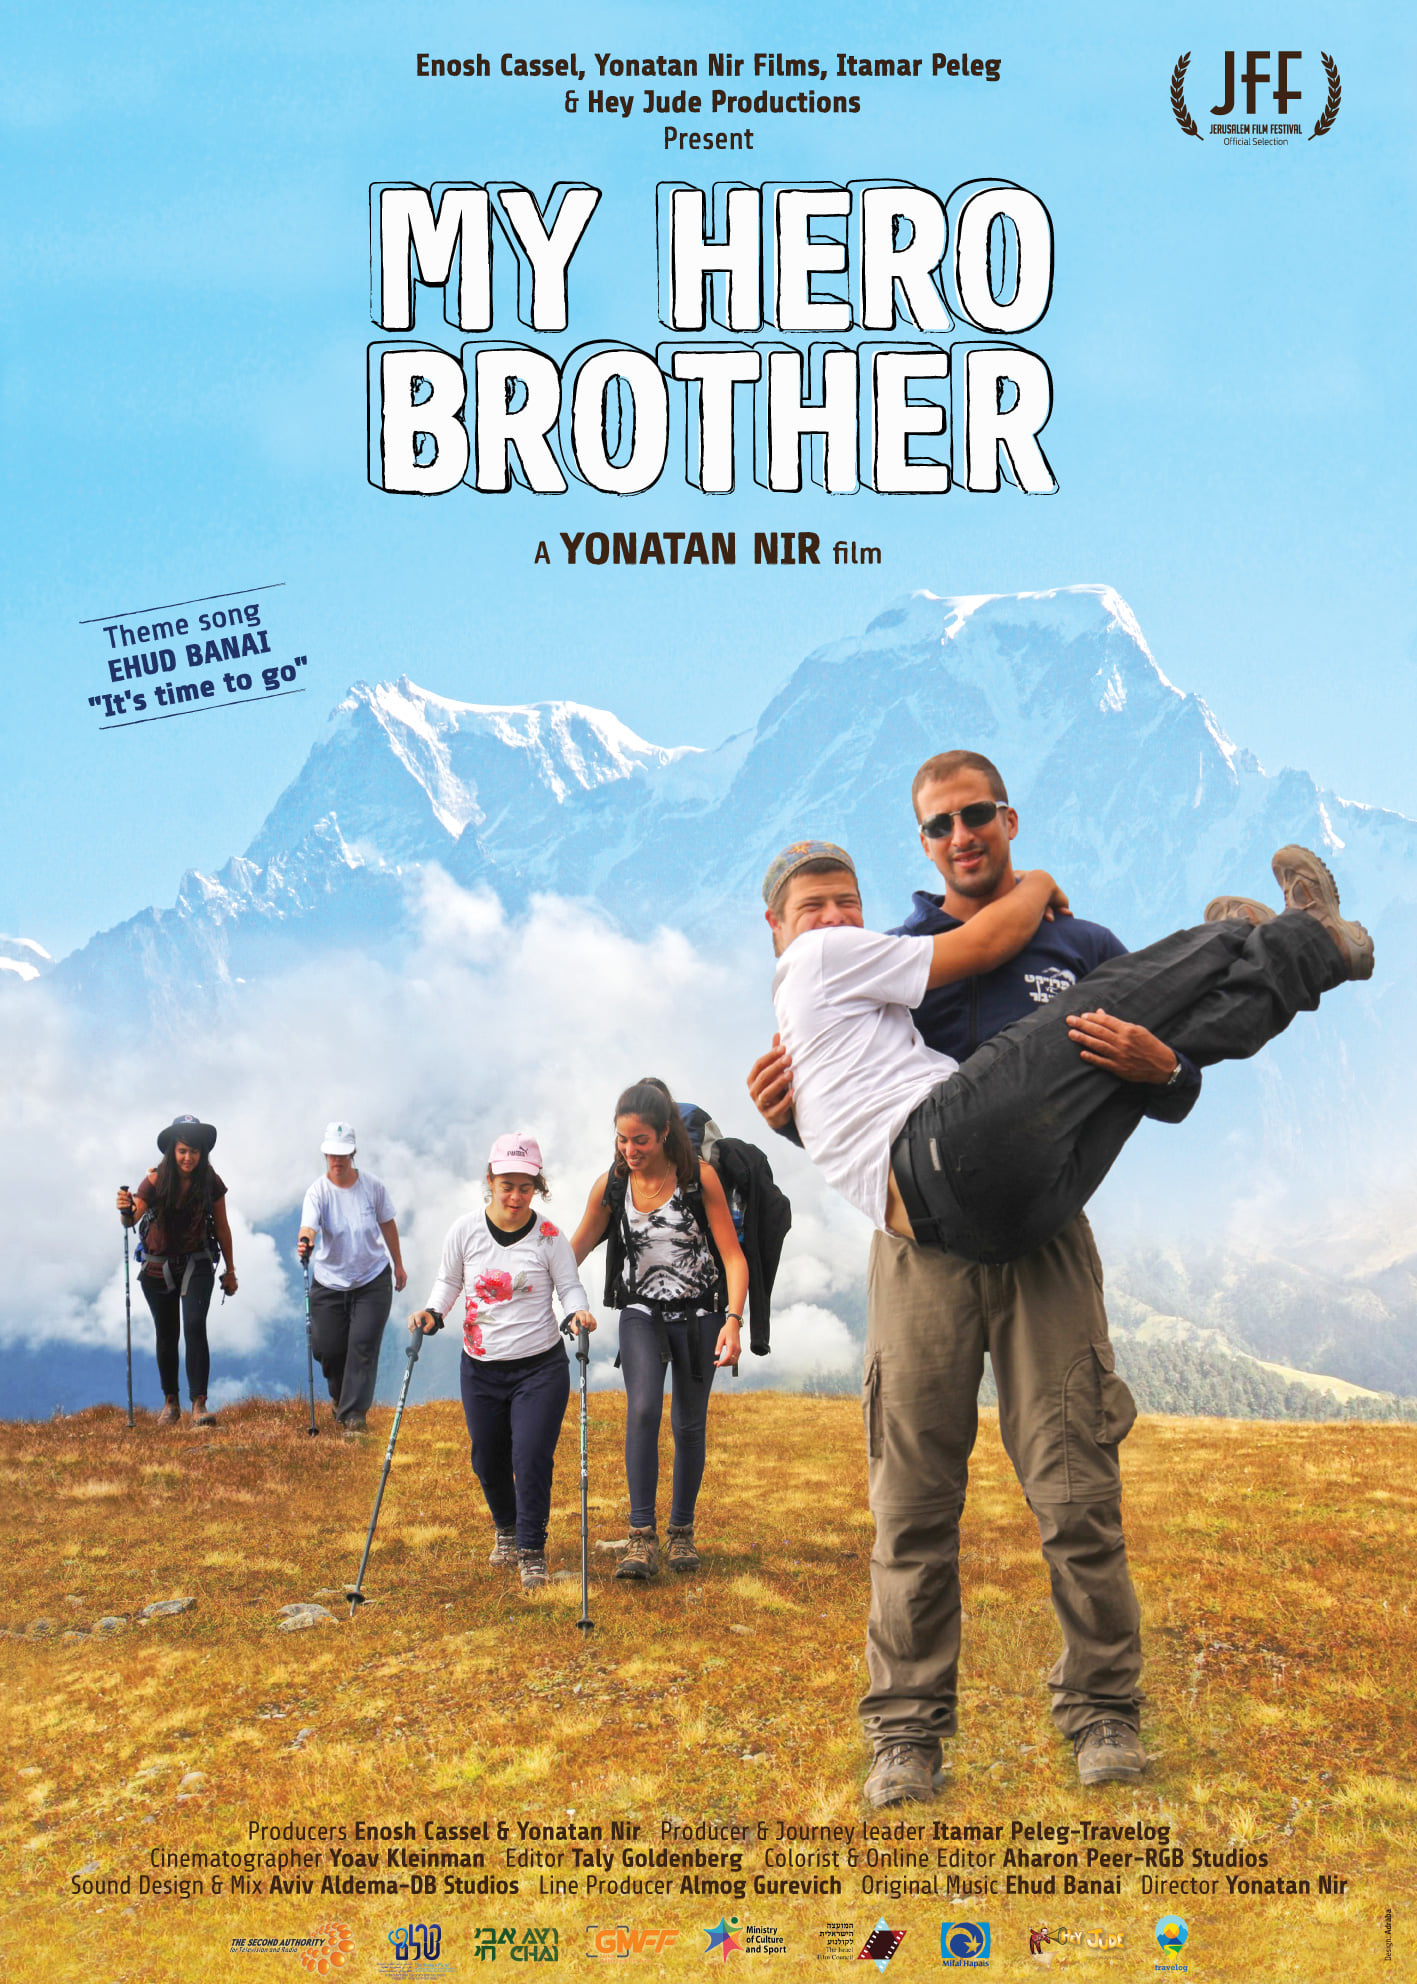 On the occasion of International Day of Persons with Disabilities, the Consulate is proud to bring the wonderful Israeli documentary film 'My Hero Brother' to a Canadian audience!